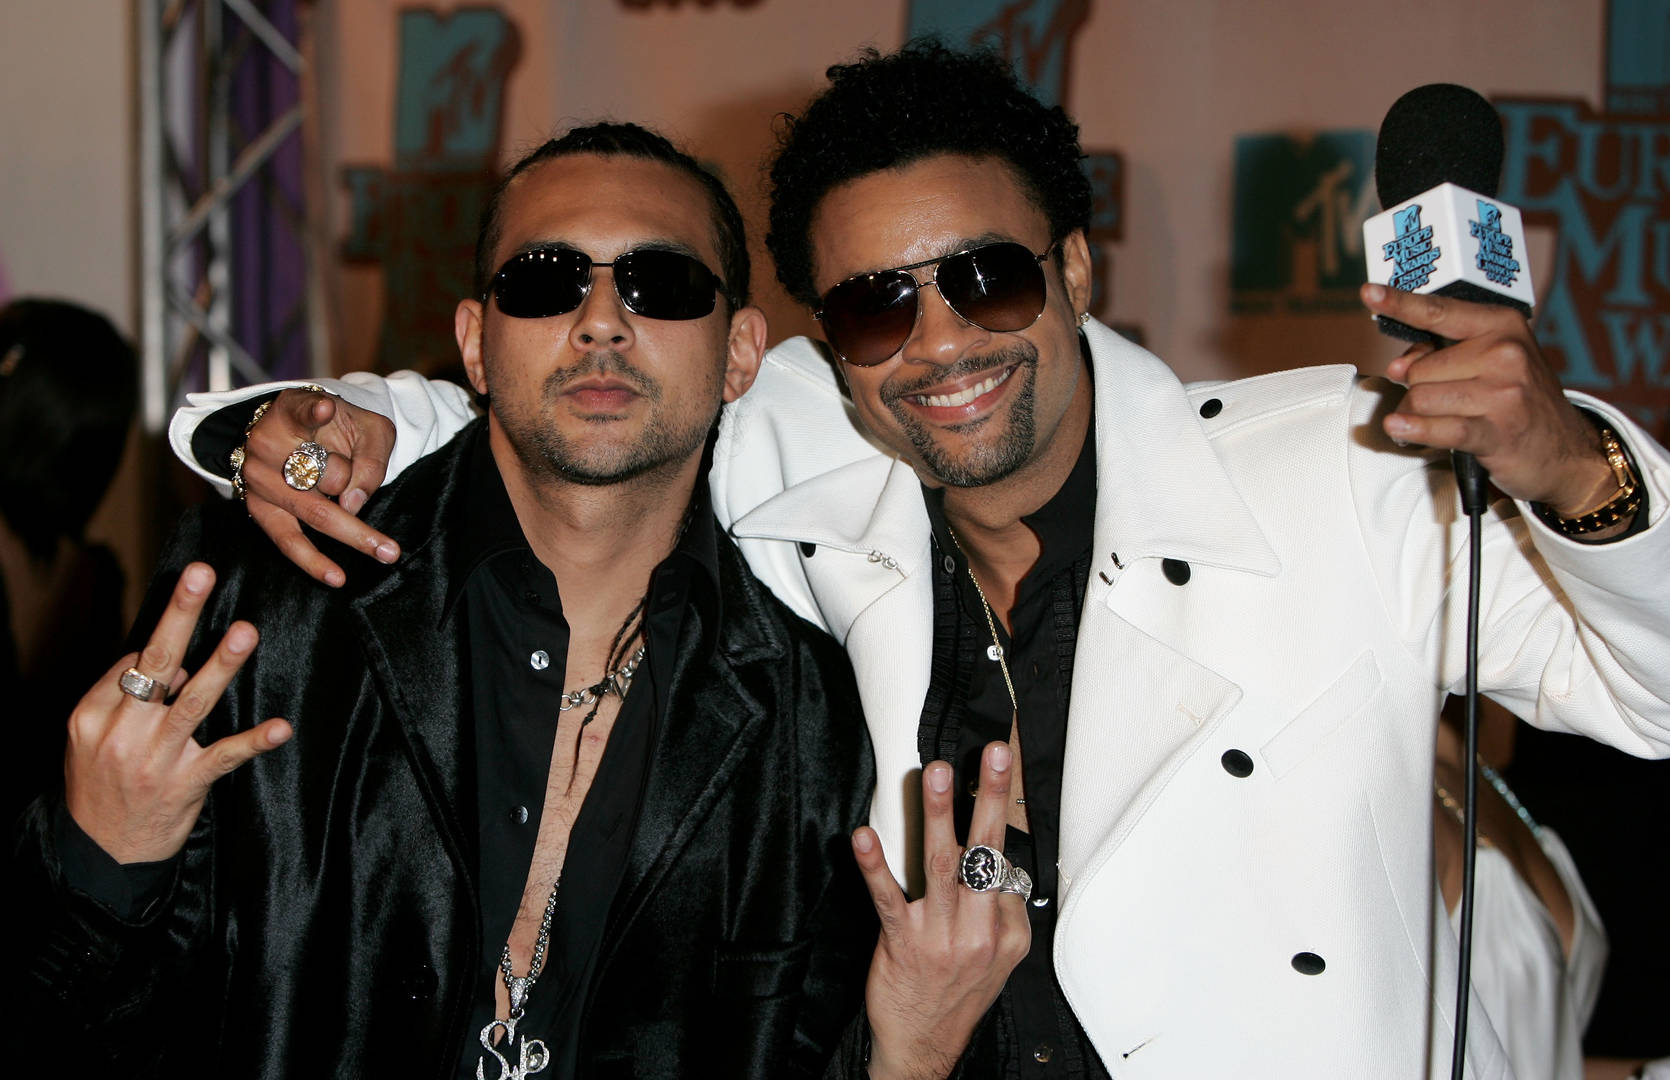 Shaggy, Sean Paul, Live & Living, Scorcher